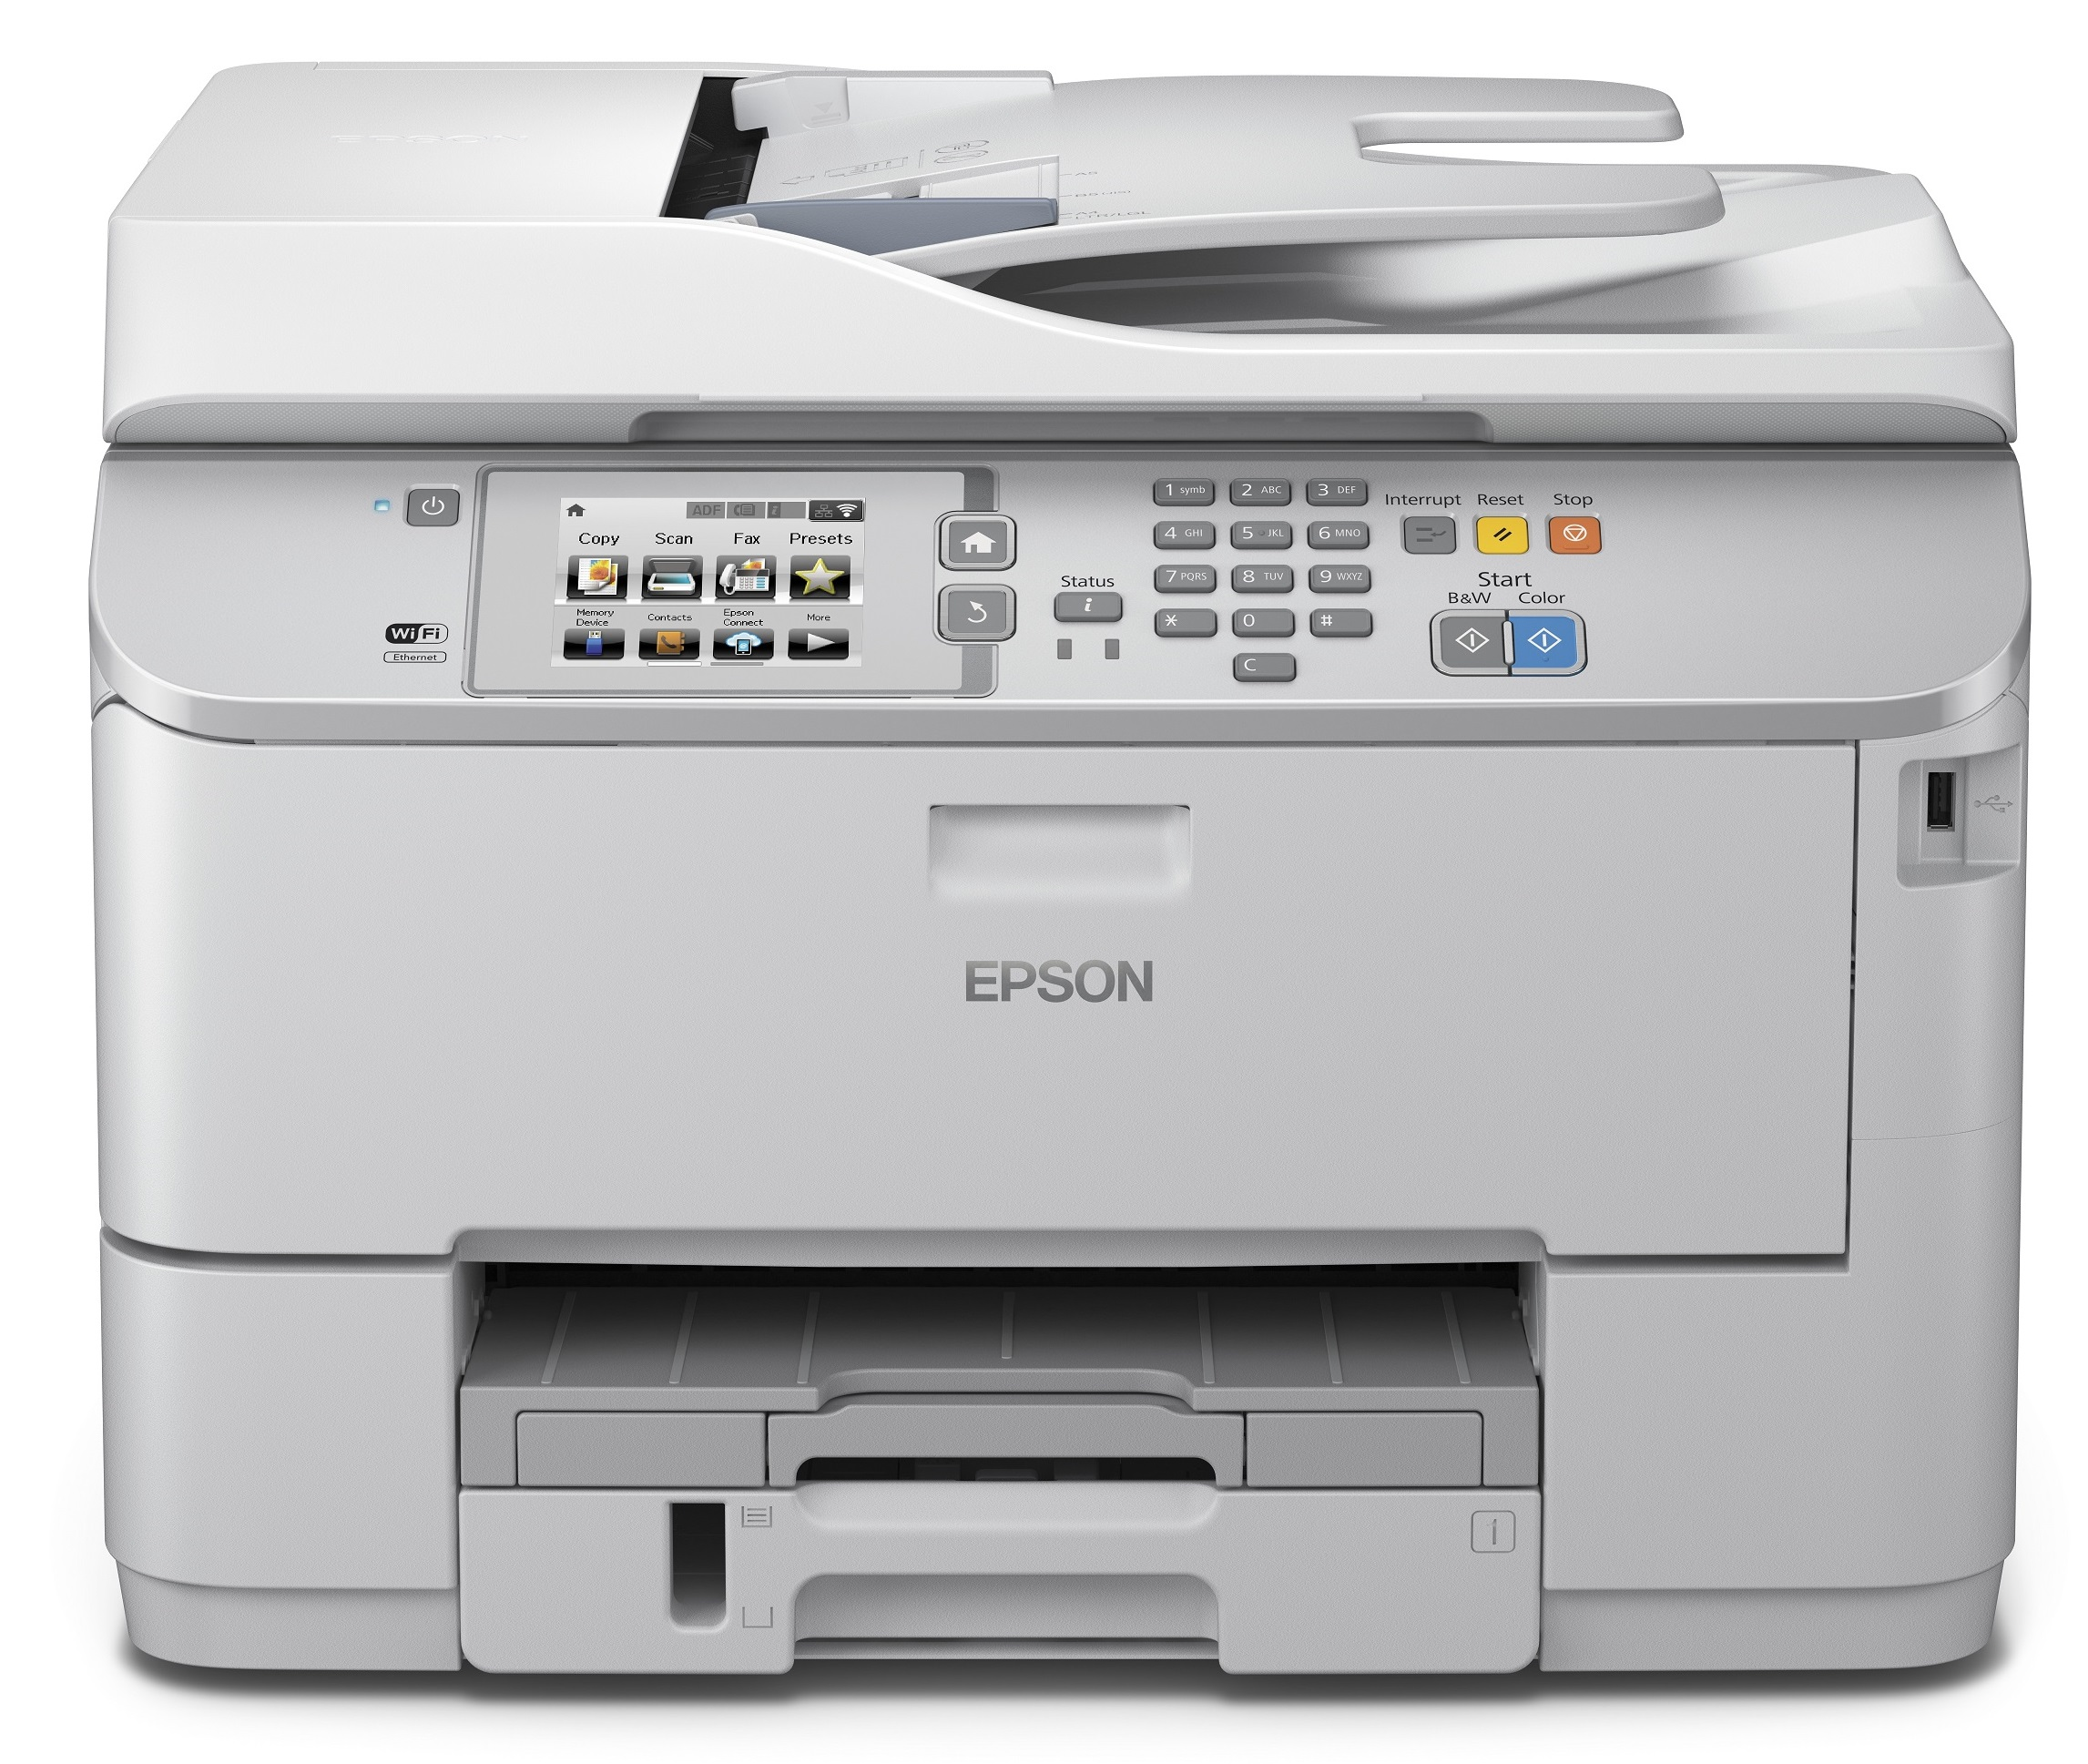 Epson WorkForce Pro WF-5620DWF Review